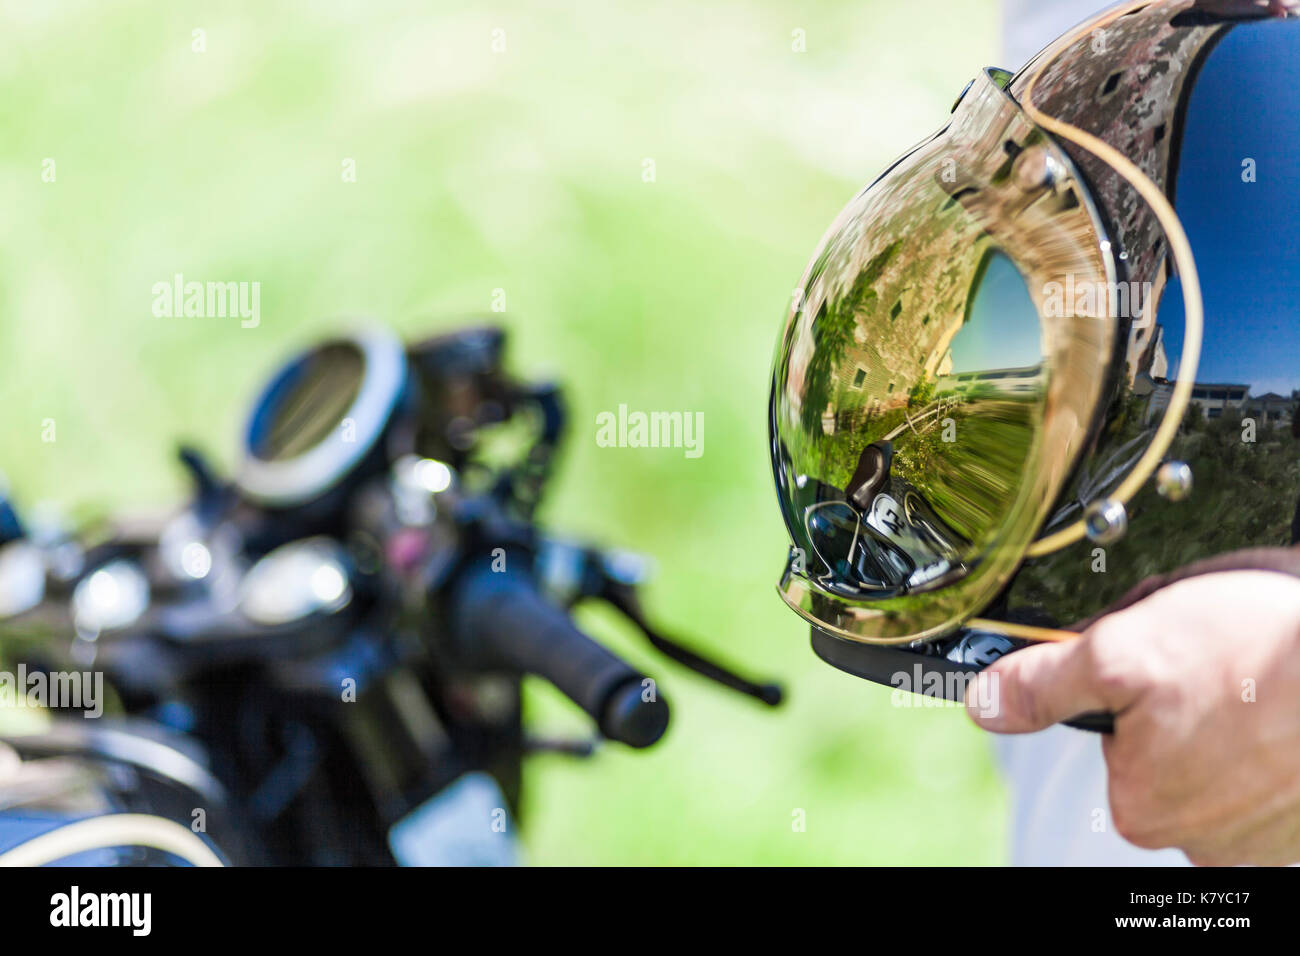 Cool reflection of custom made scrambler style cafe racer in the helmet - Stock Image